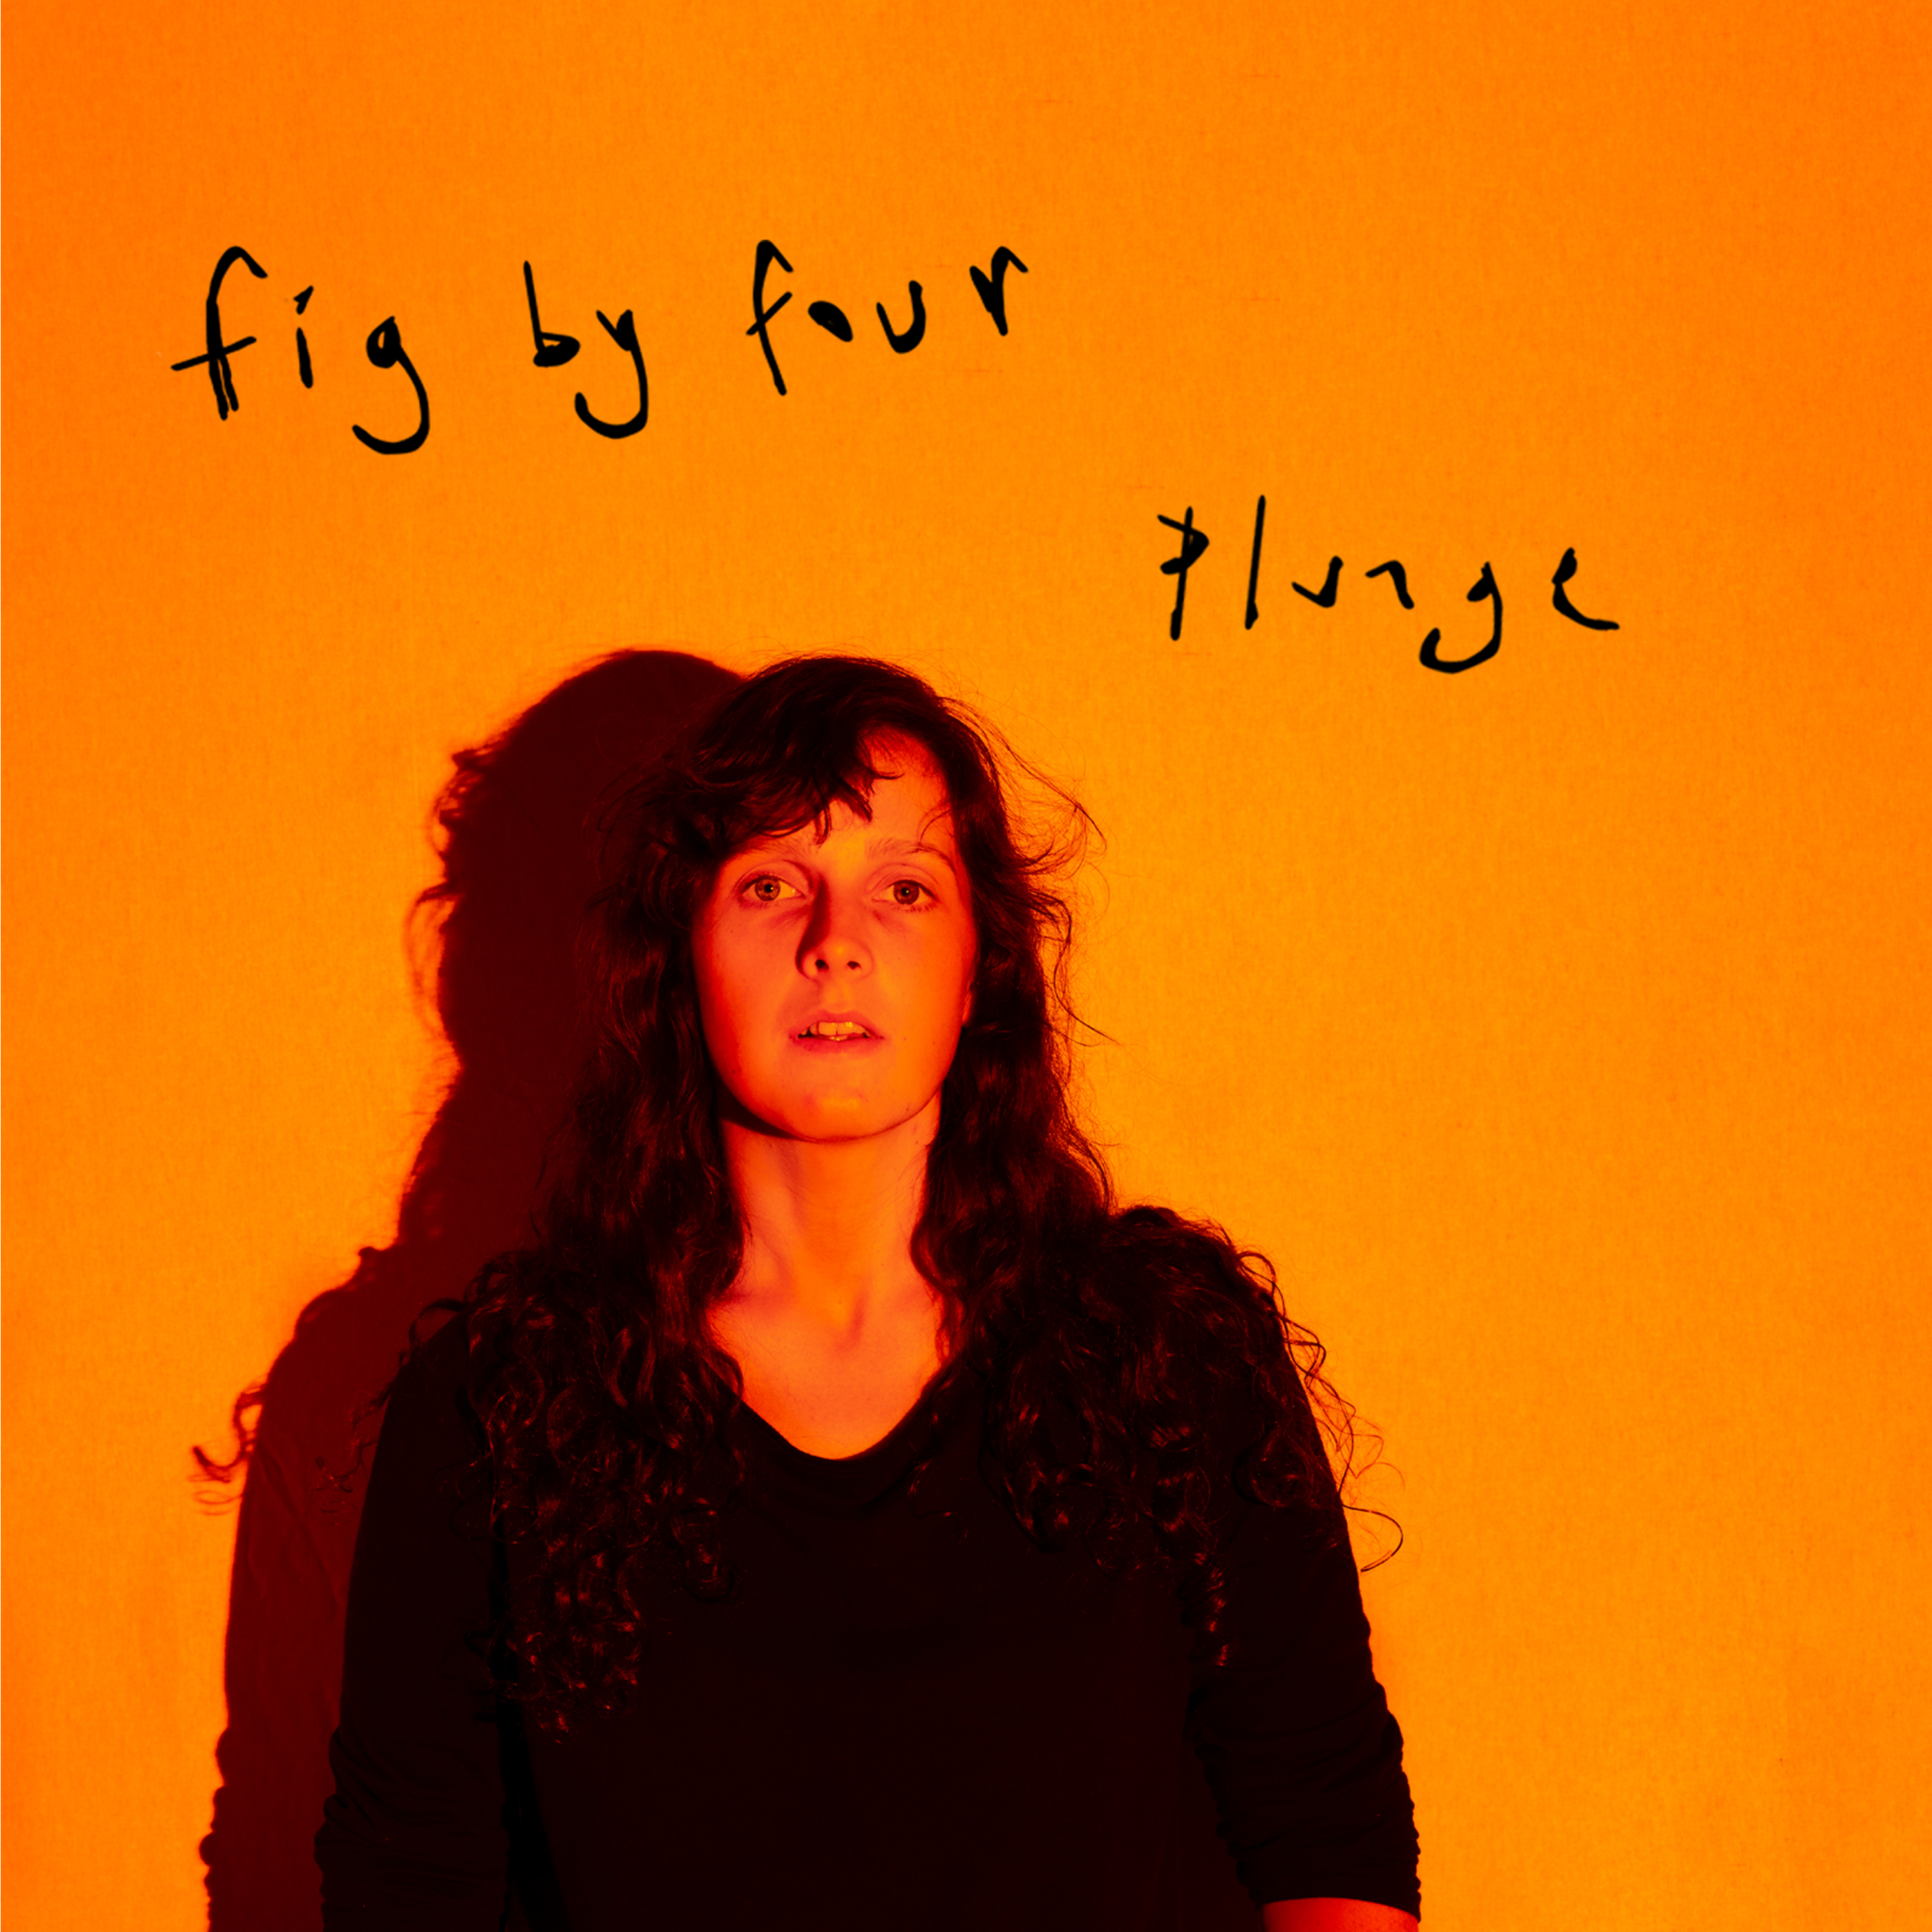 Fig by Four - Plunge Single Cover